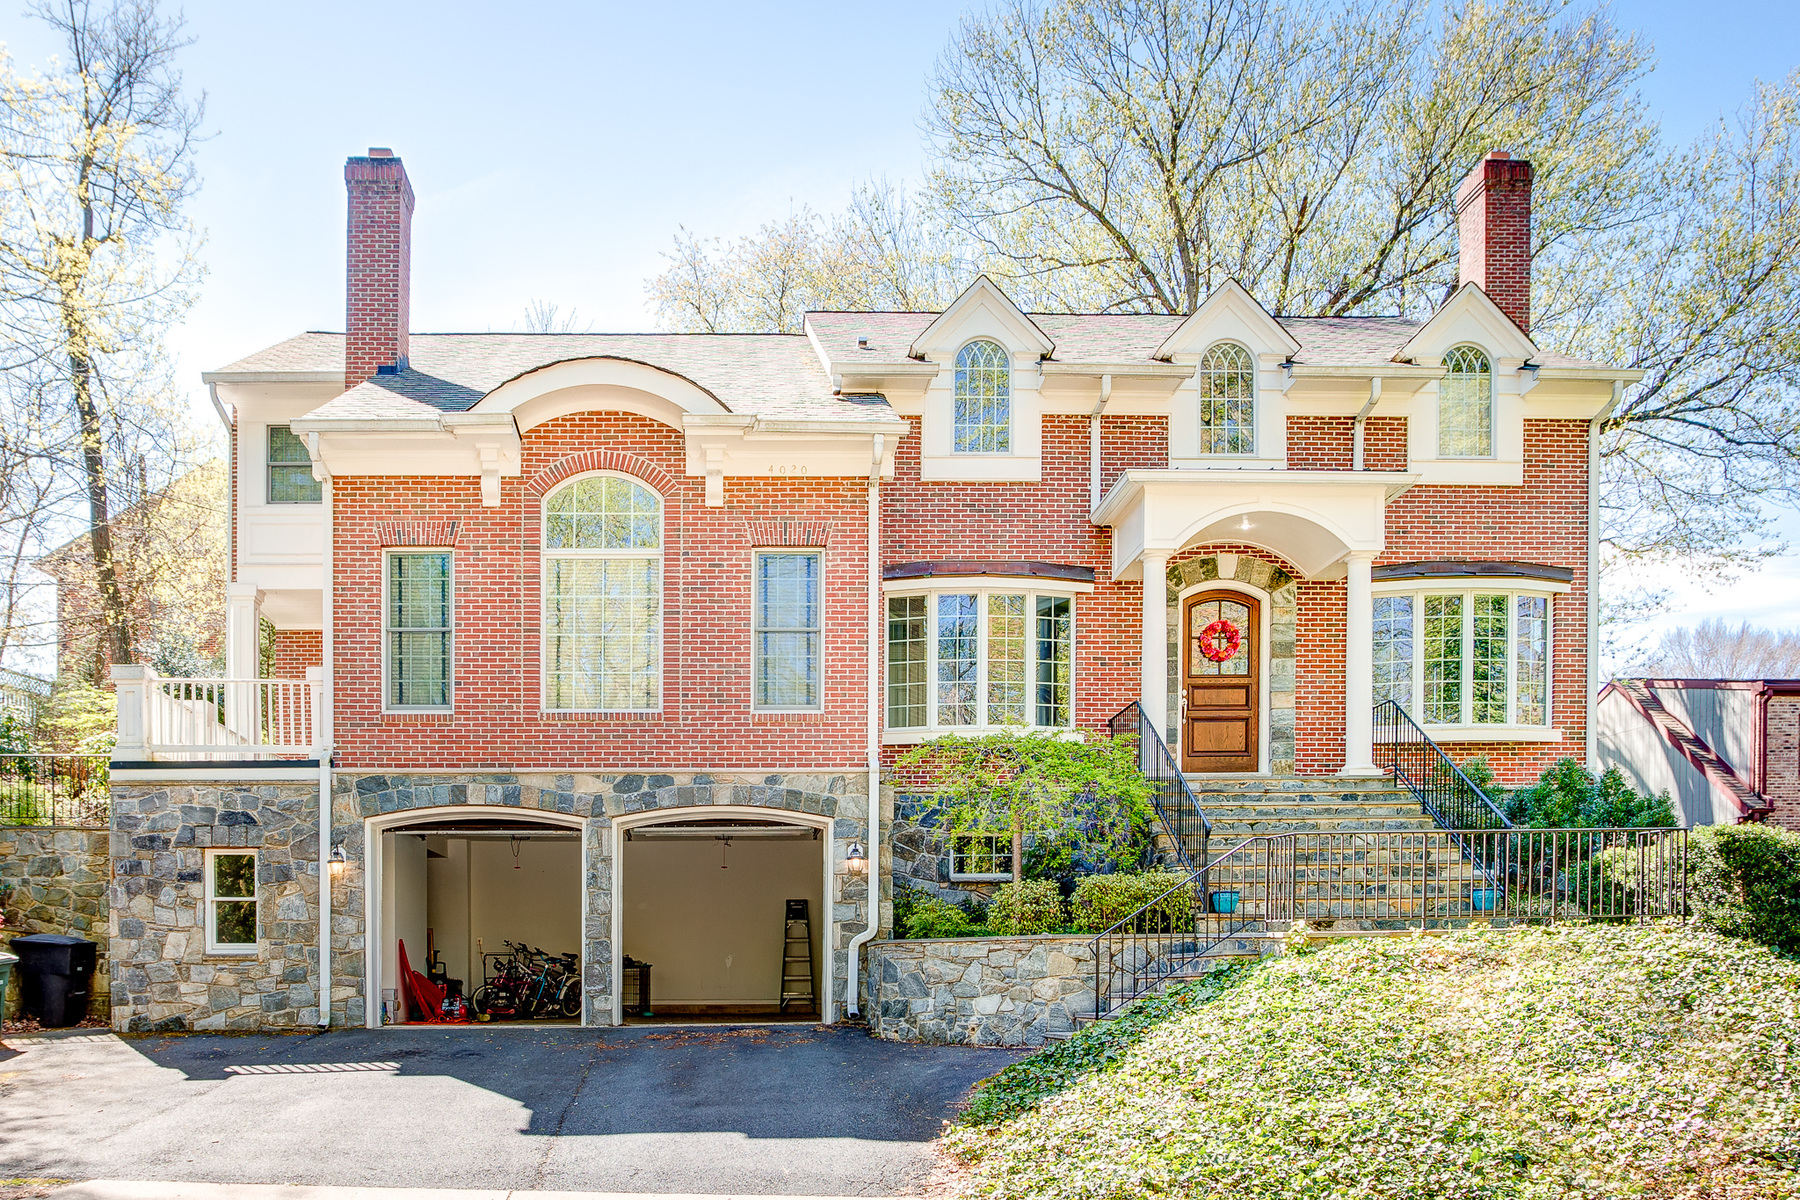 Single Family Home for Sale at Arlingwood 4020 Randolph Street N Arlington, Virginia 22207 United States